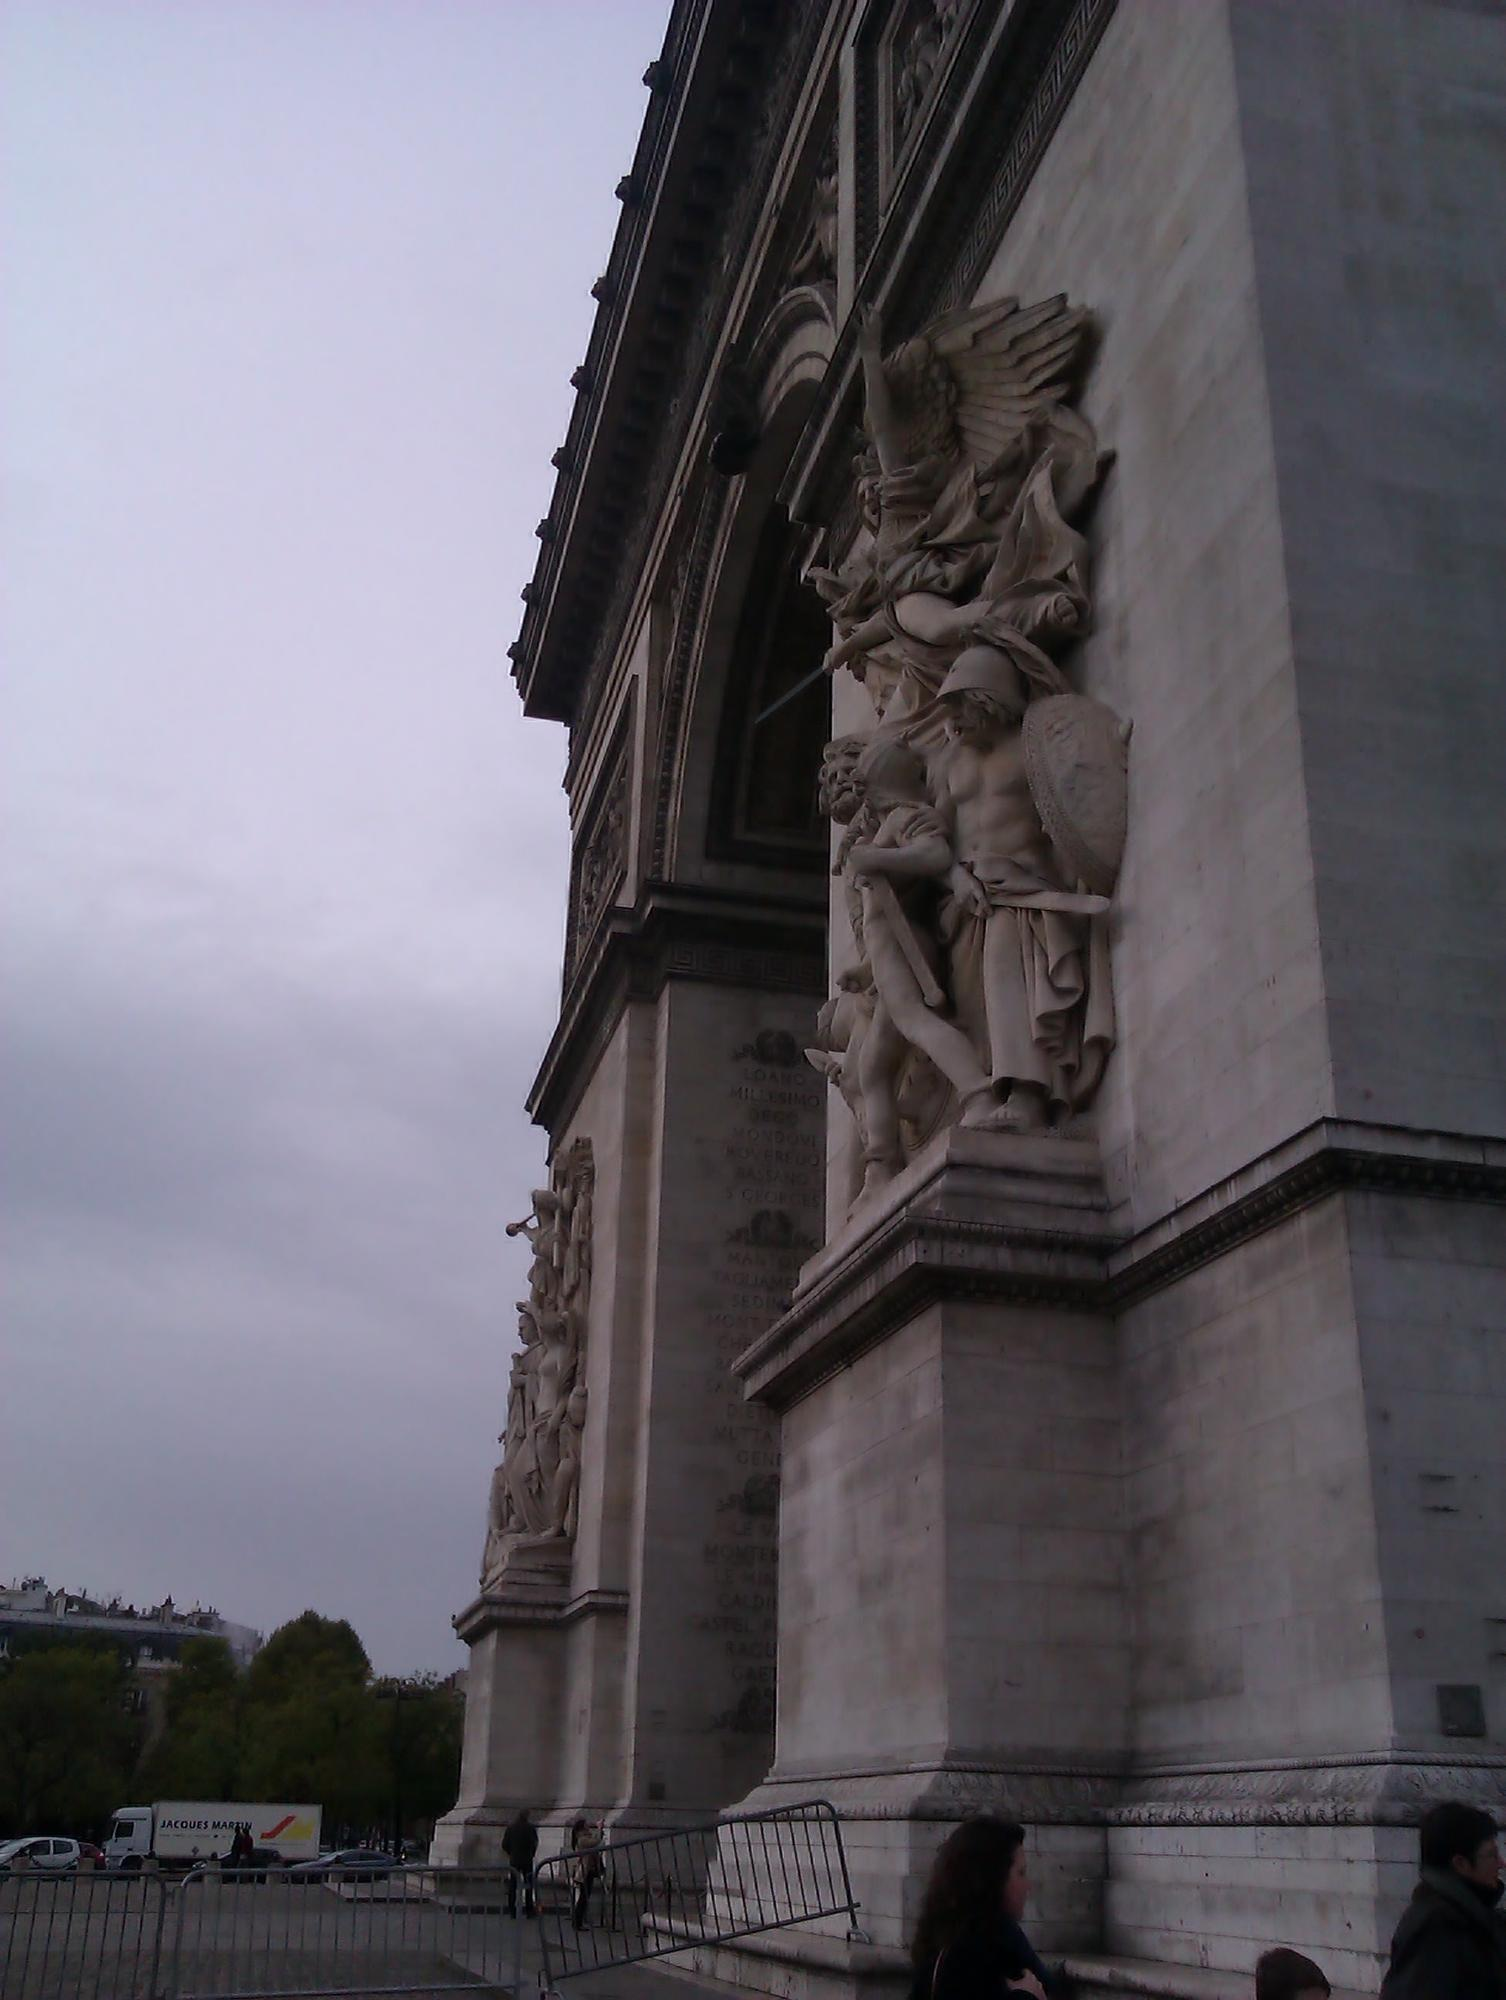 http://ralsina.me/galleries/london-paris-2012/IMAG0846.jpg